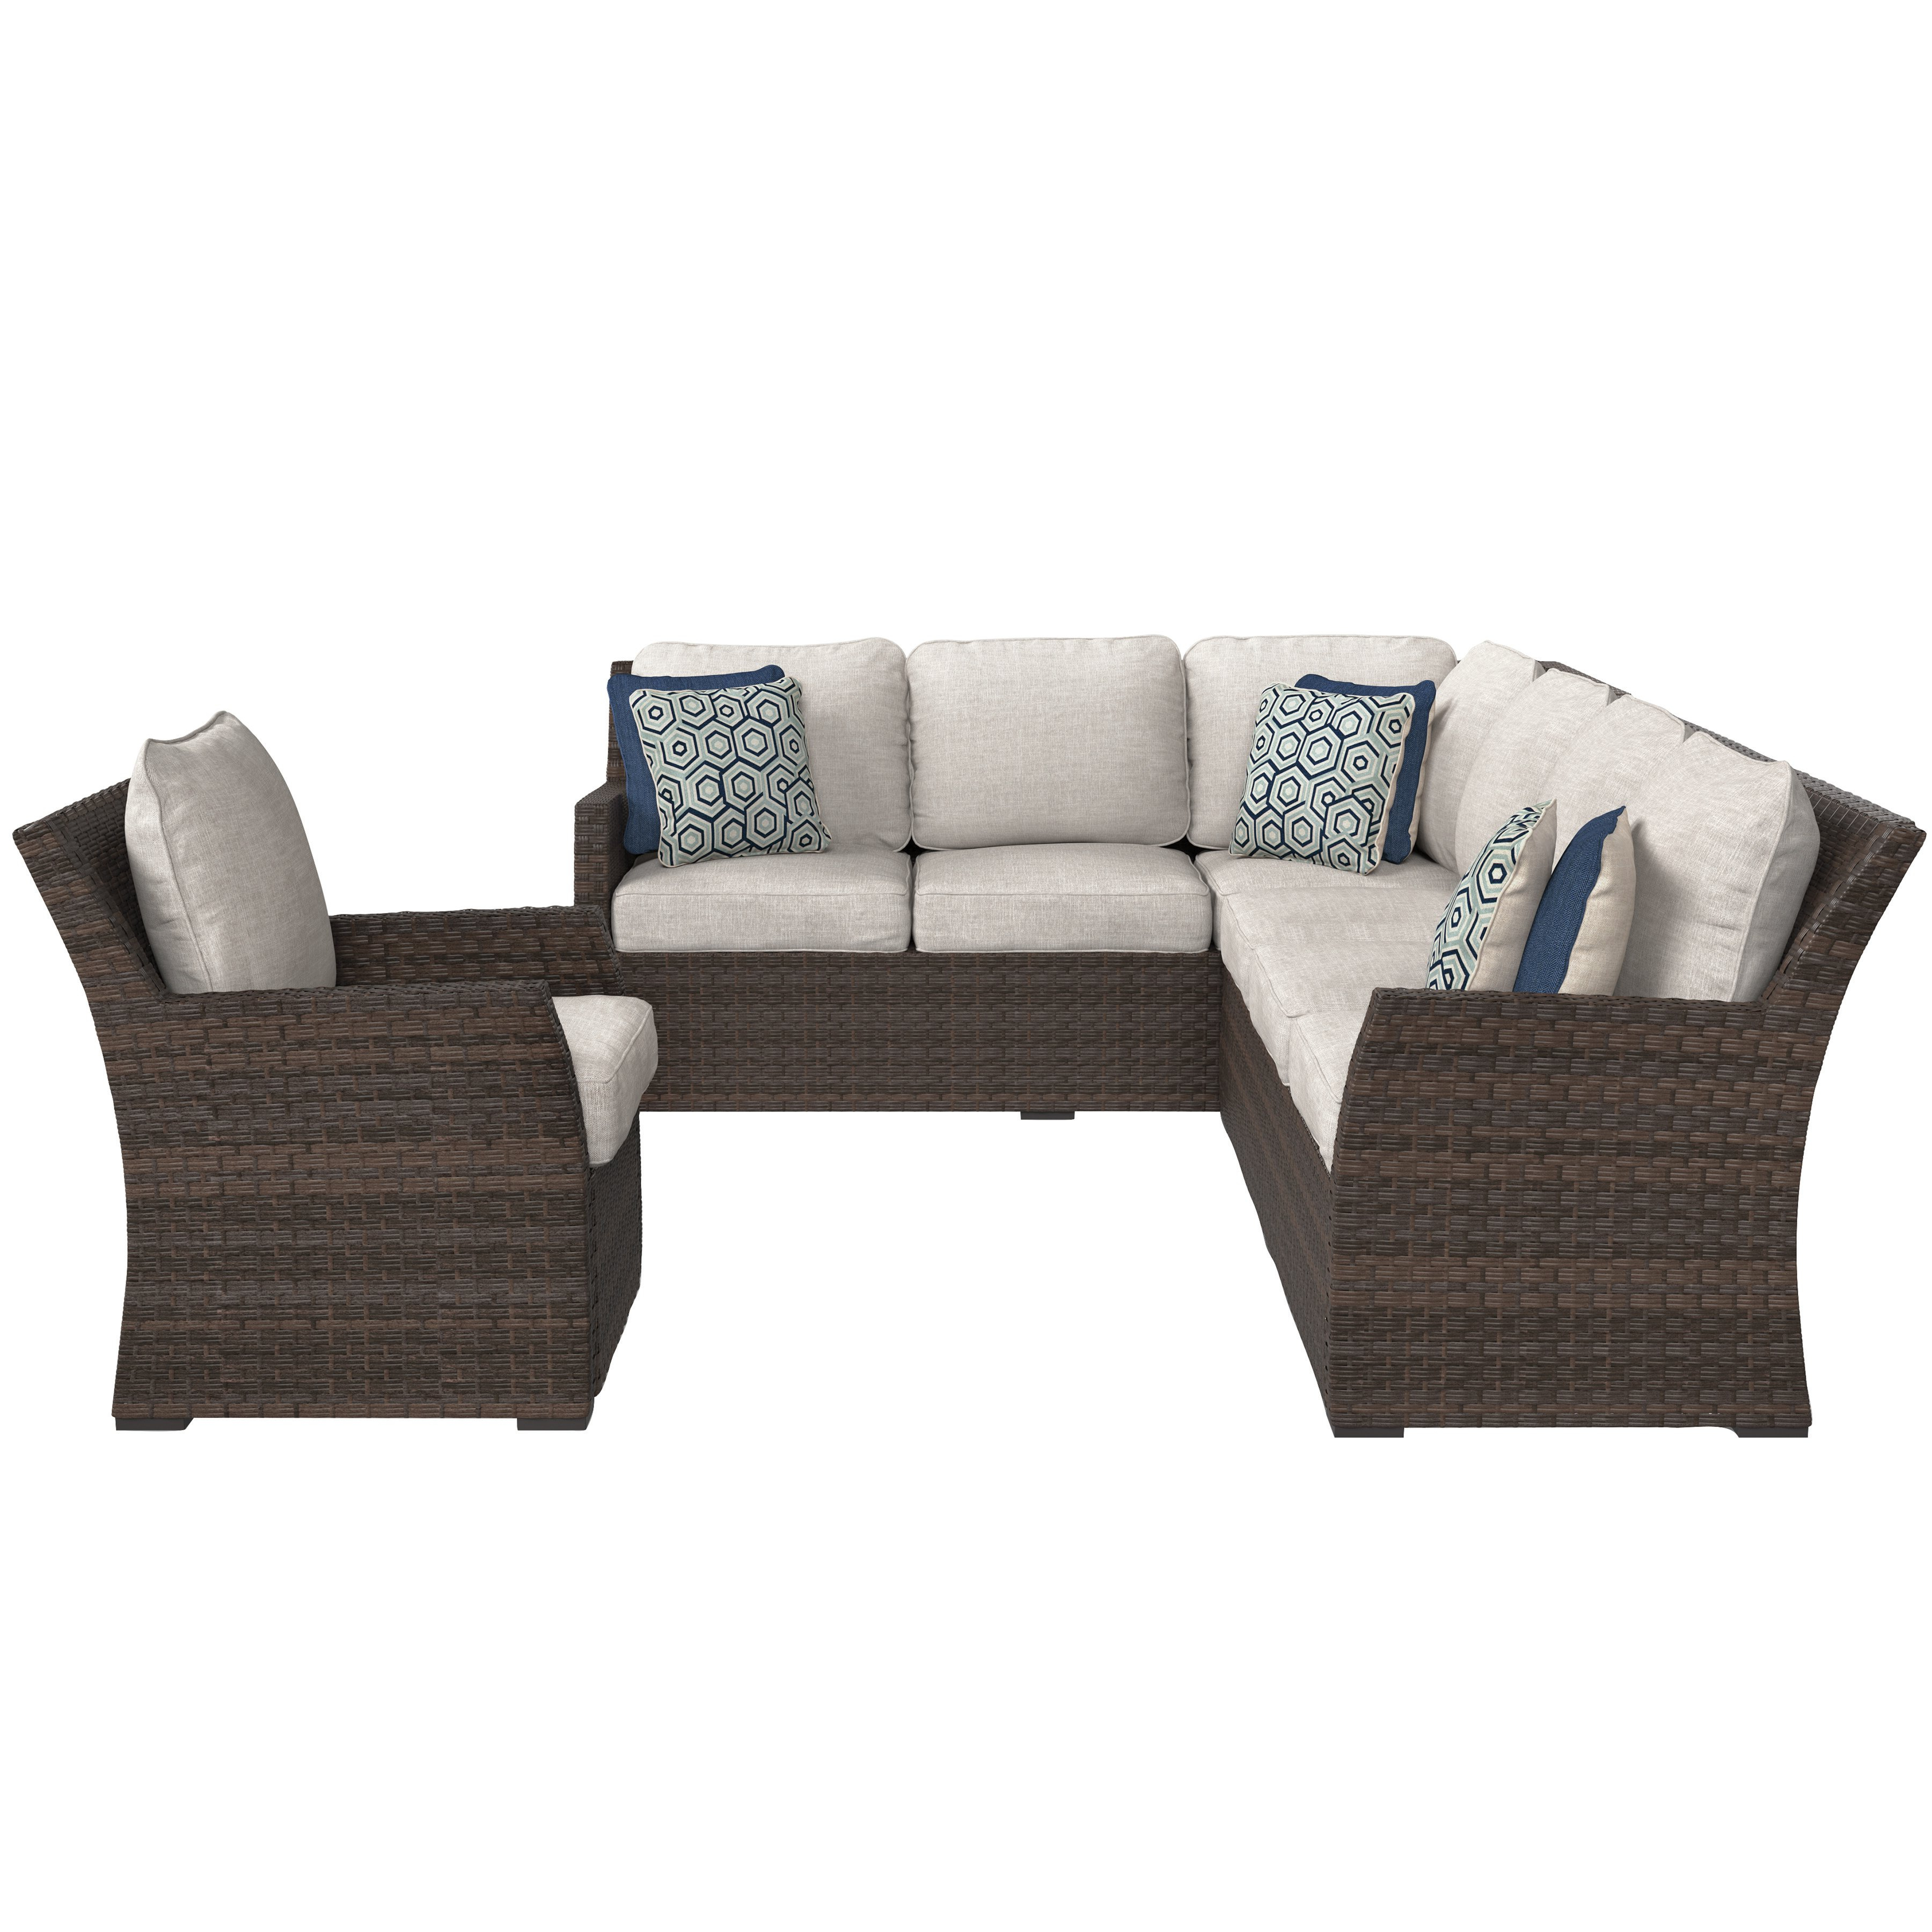 Hursey Patio Sofas In Well Known Adele Patio Sectional With Cushions (View 20 of 20)